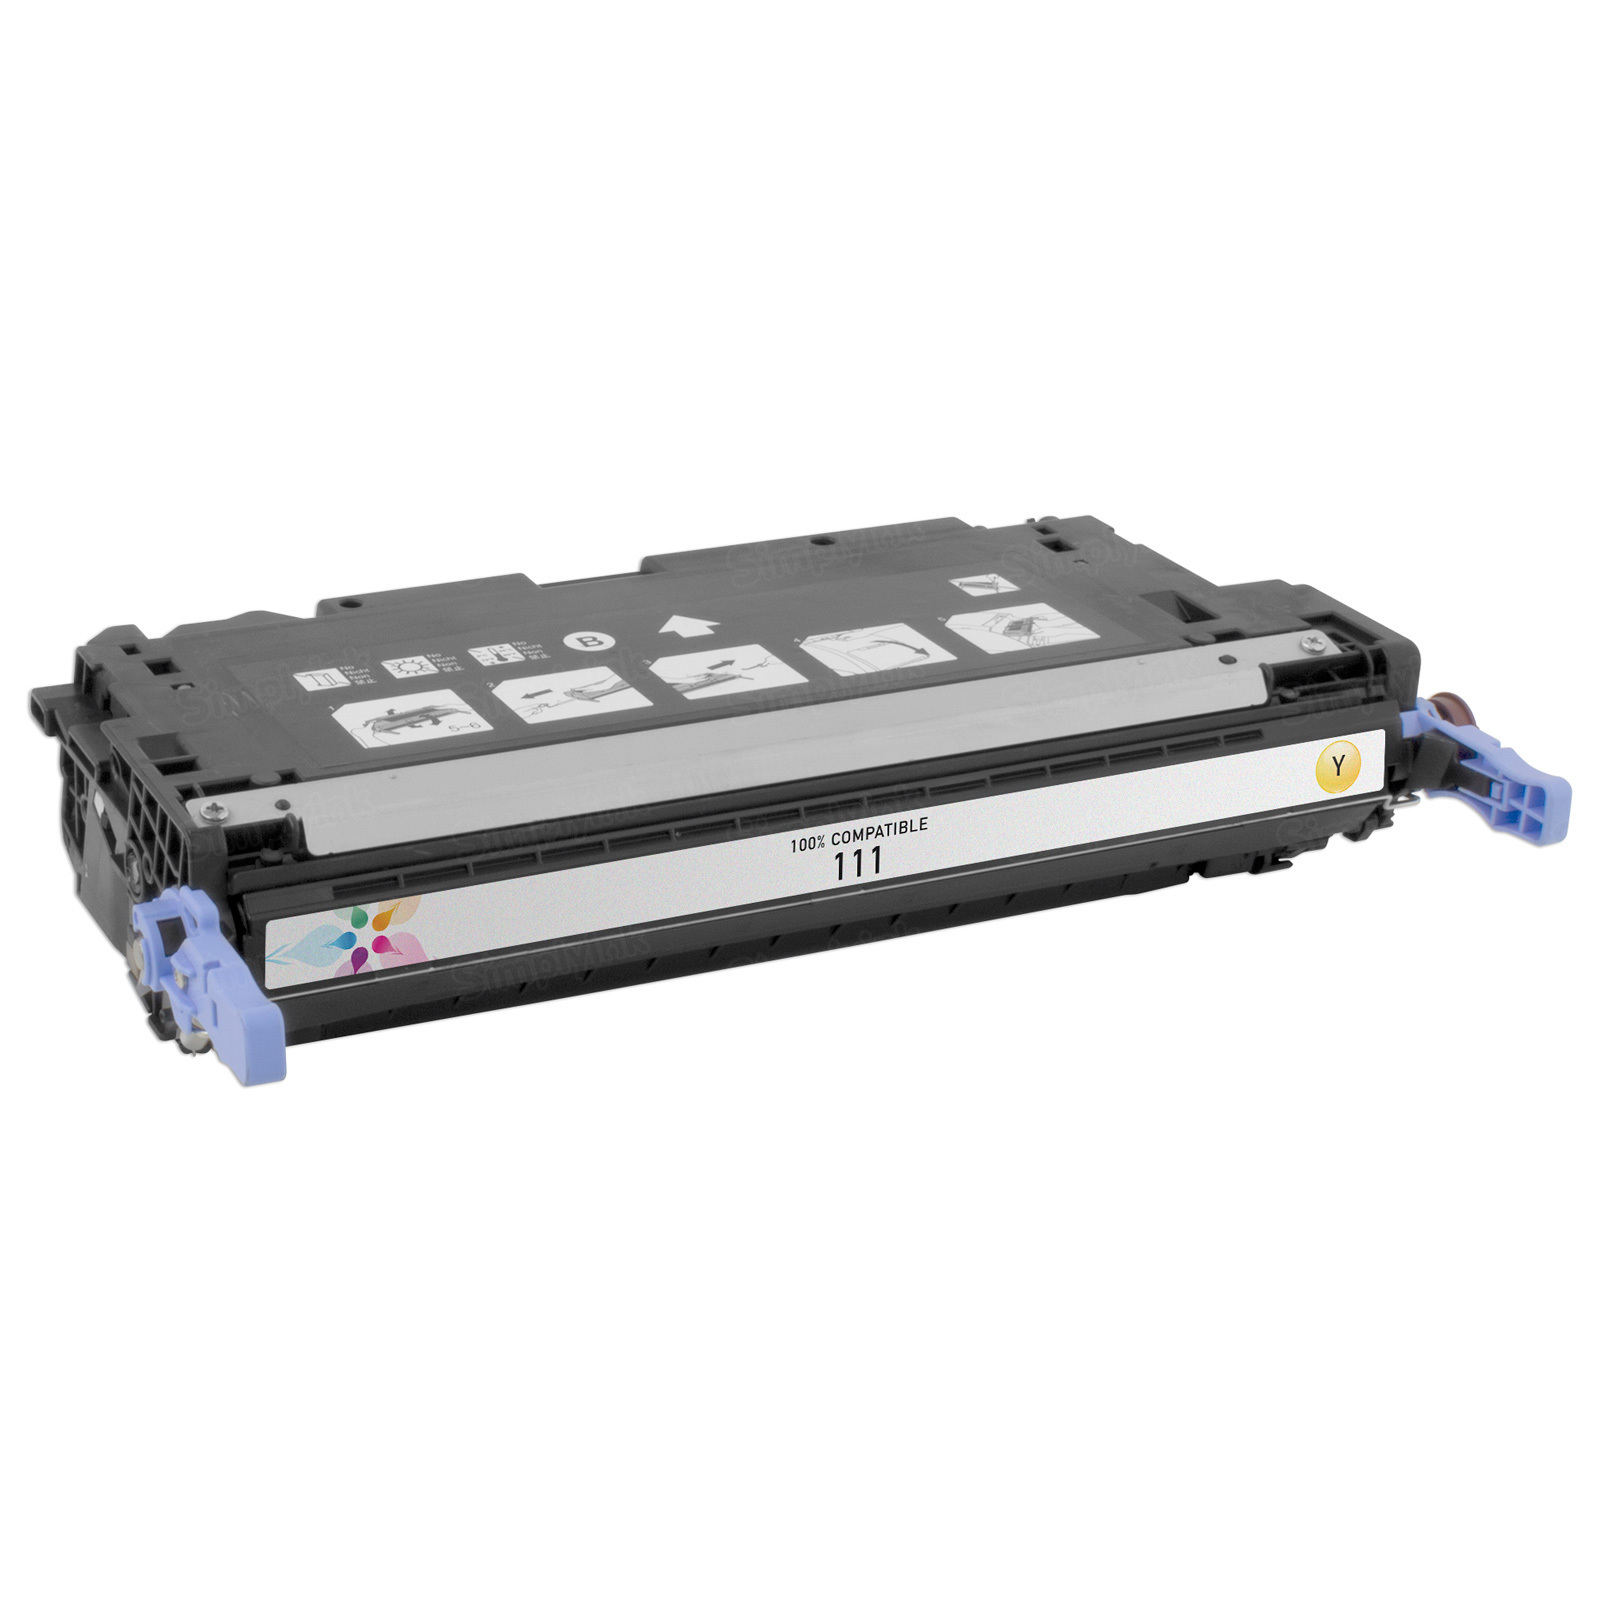 Canon 111) Yellow Toner Cartridge, Remanufactured